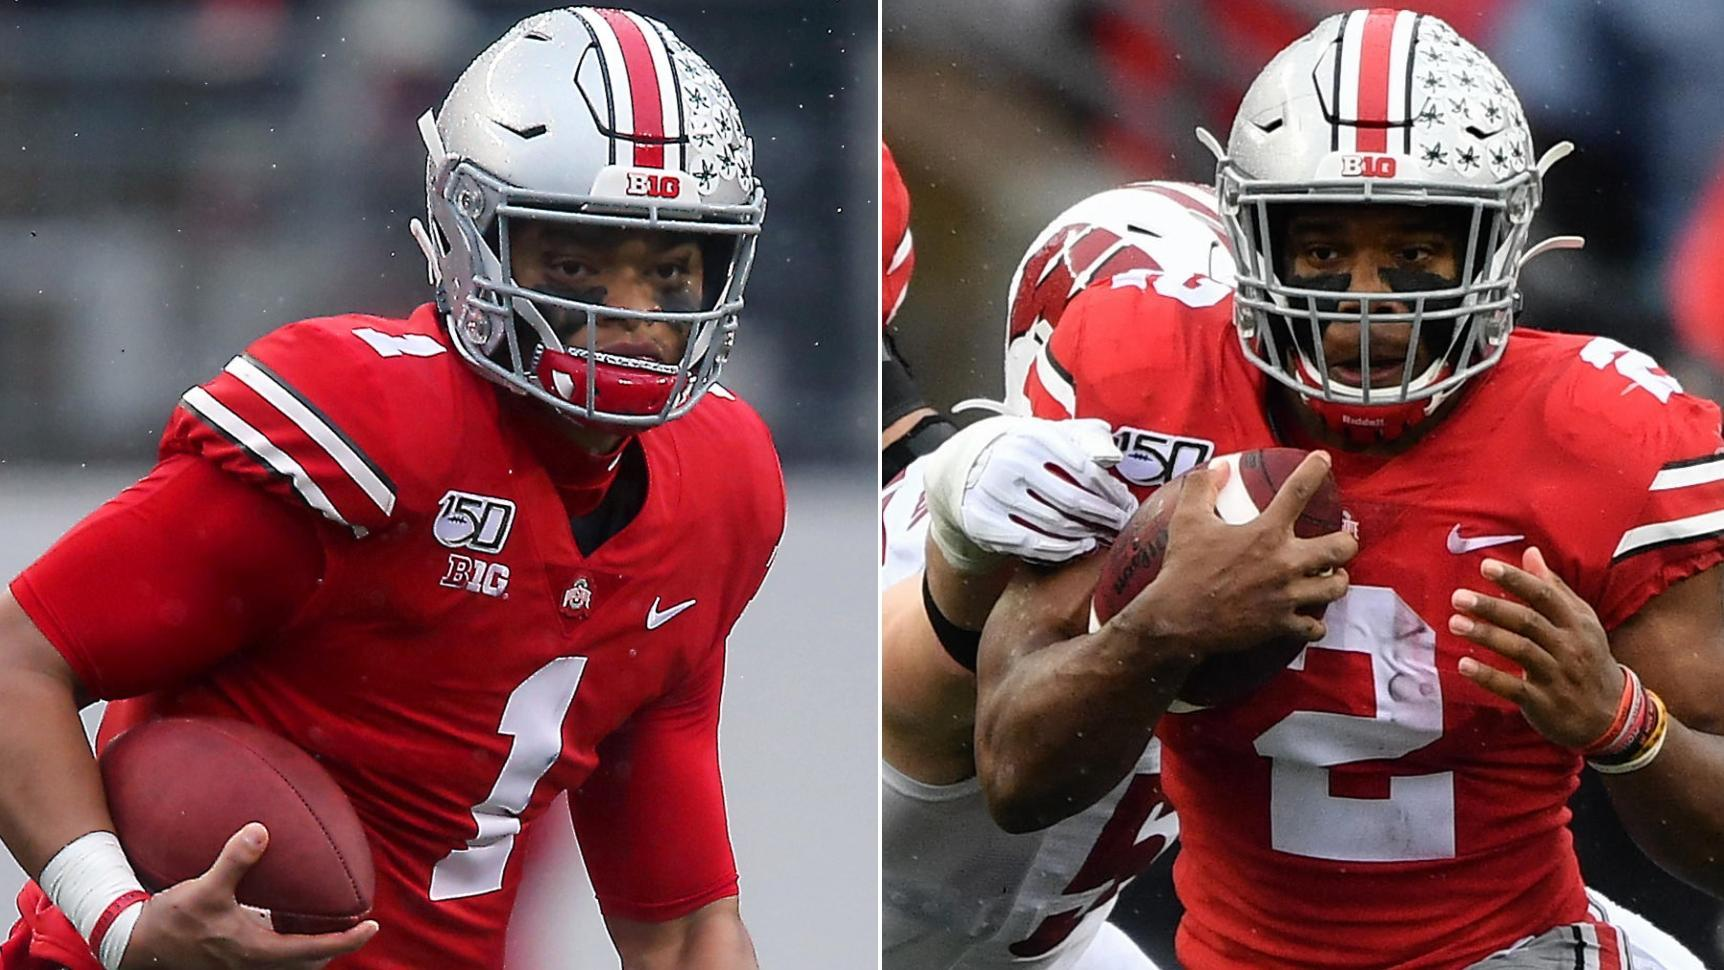 Fields, Dobbins show out in Buckeyes' win over the Badgers